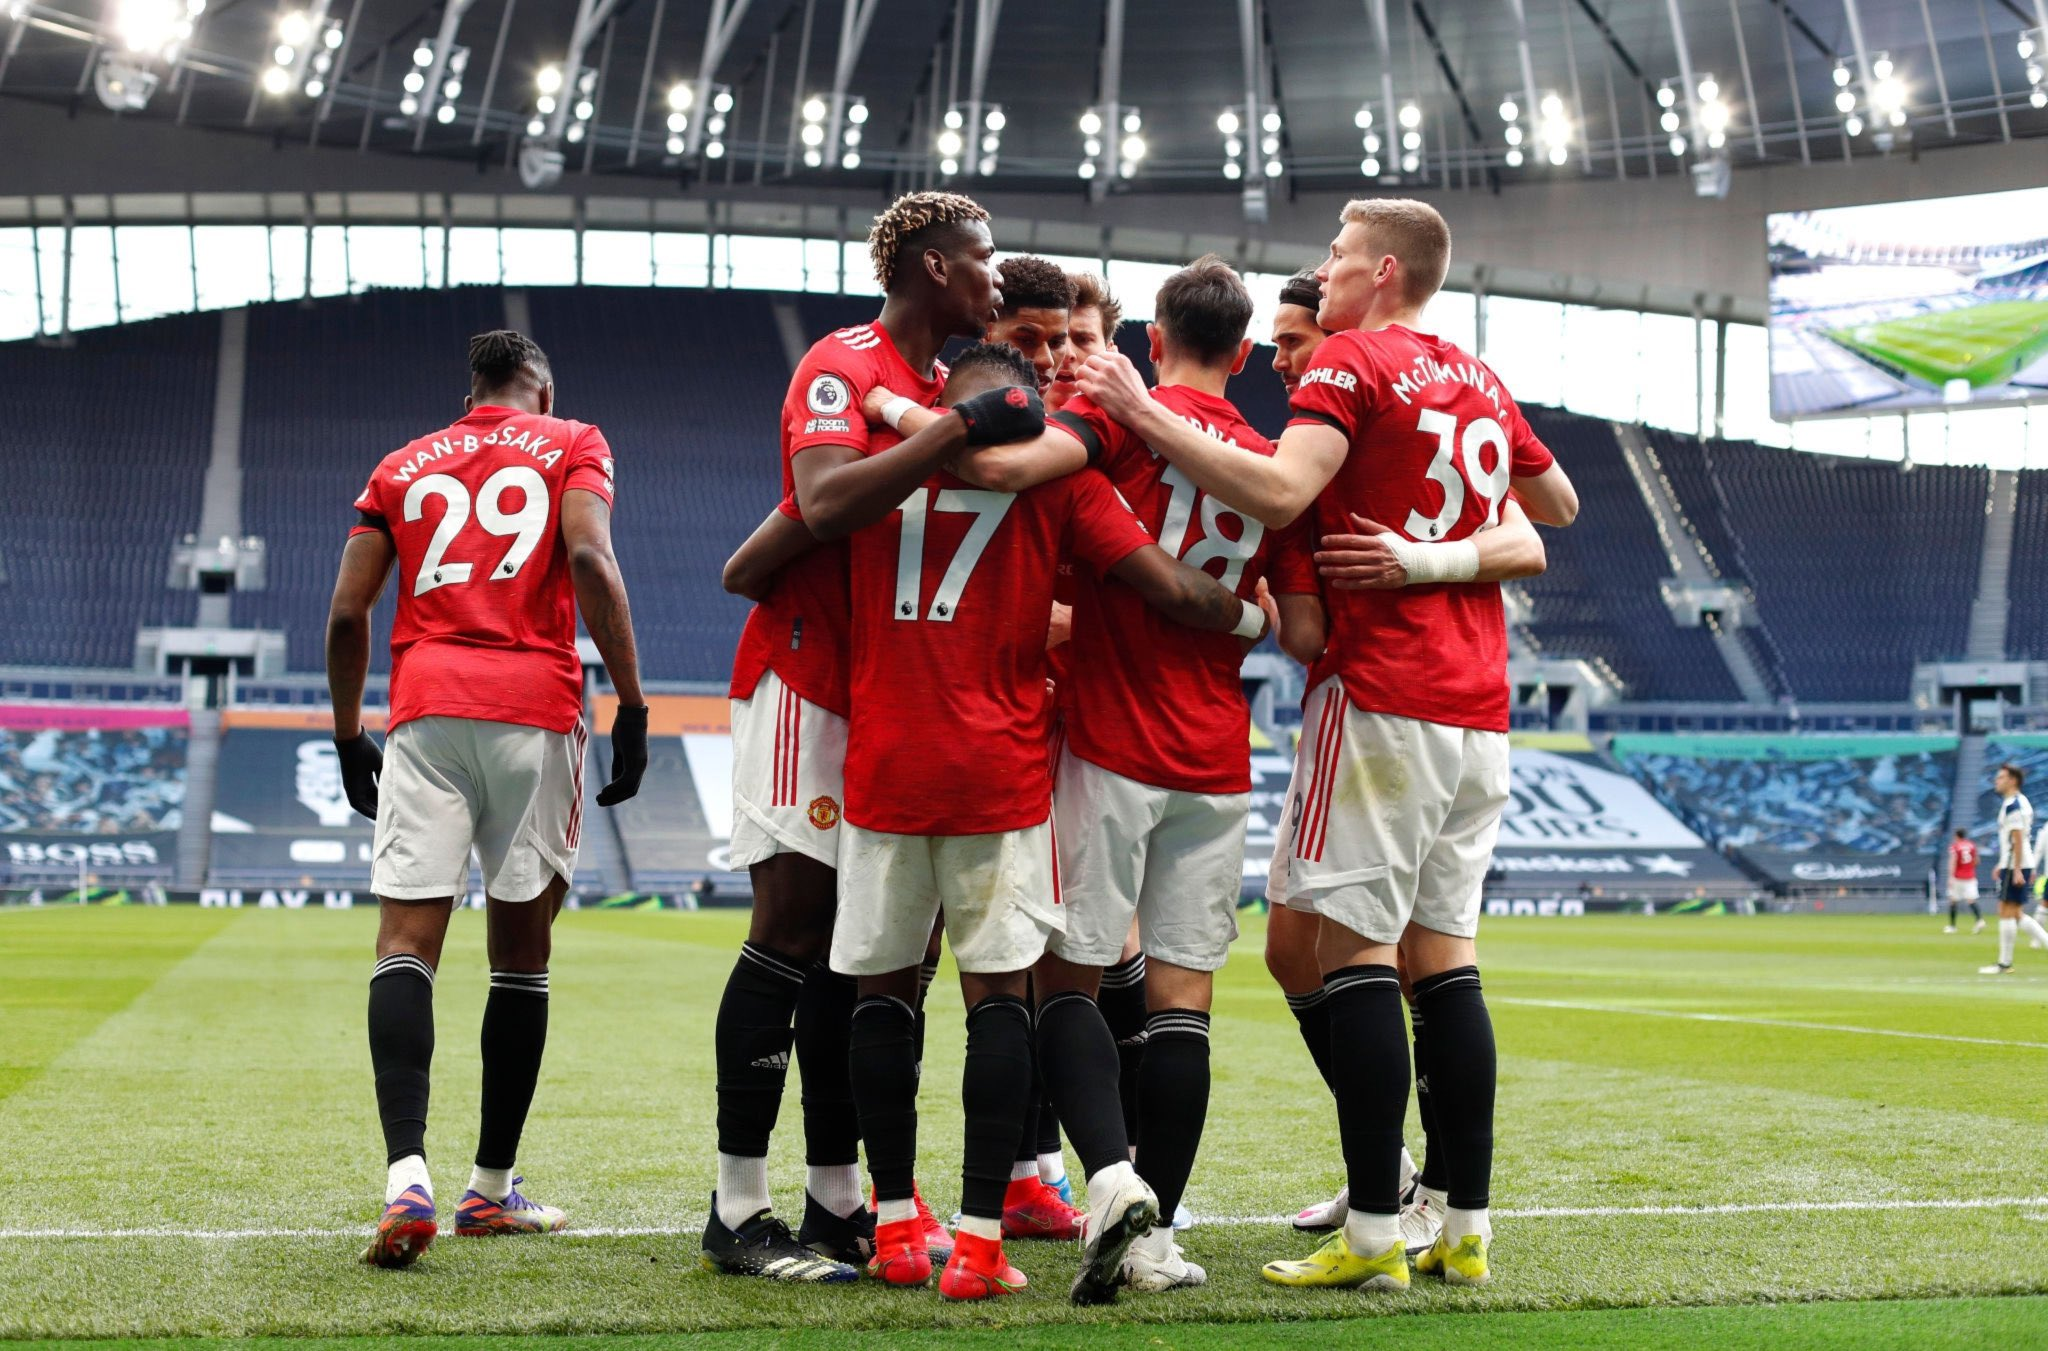 Premier League: Man United Come From Behind To Beat Spurs, Stretch Unbeaten Away Run